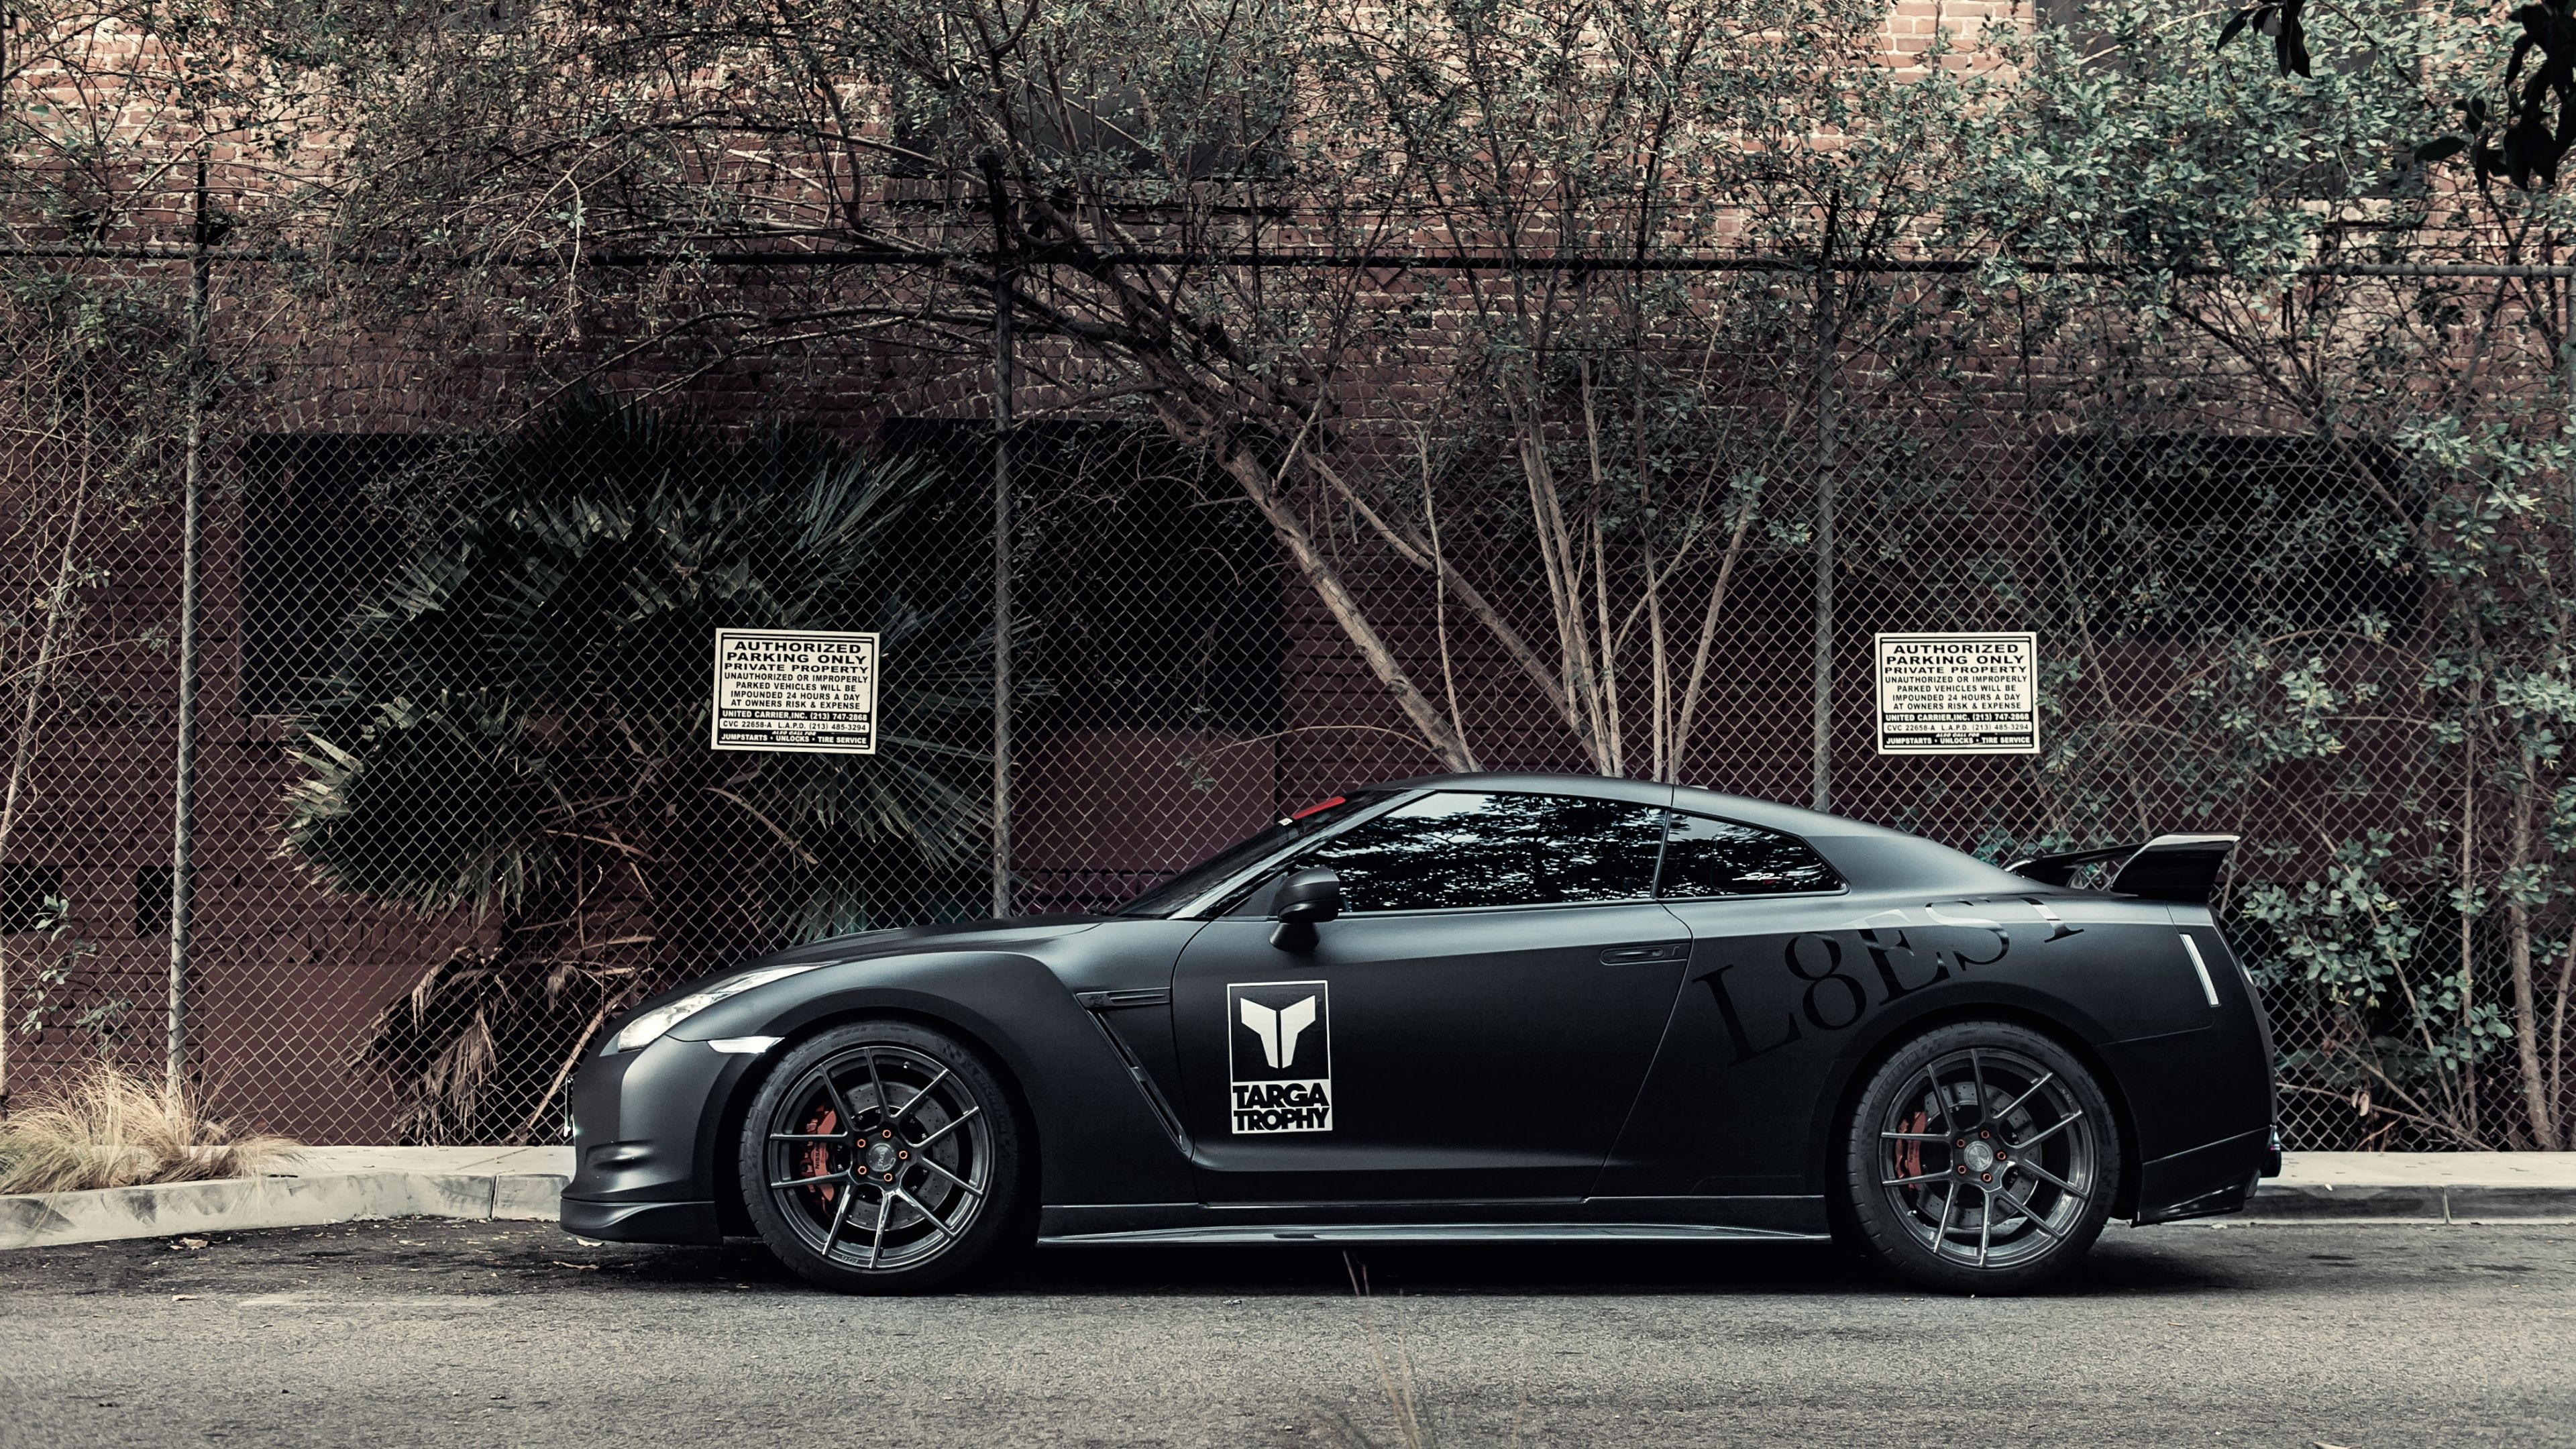 X Wallpaper Nissan Gt R Matt Black Side View Wallpapers Pinterest Nissan Gt X Wallpaper And Nissan